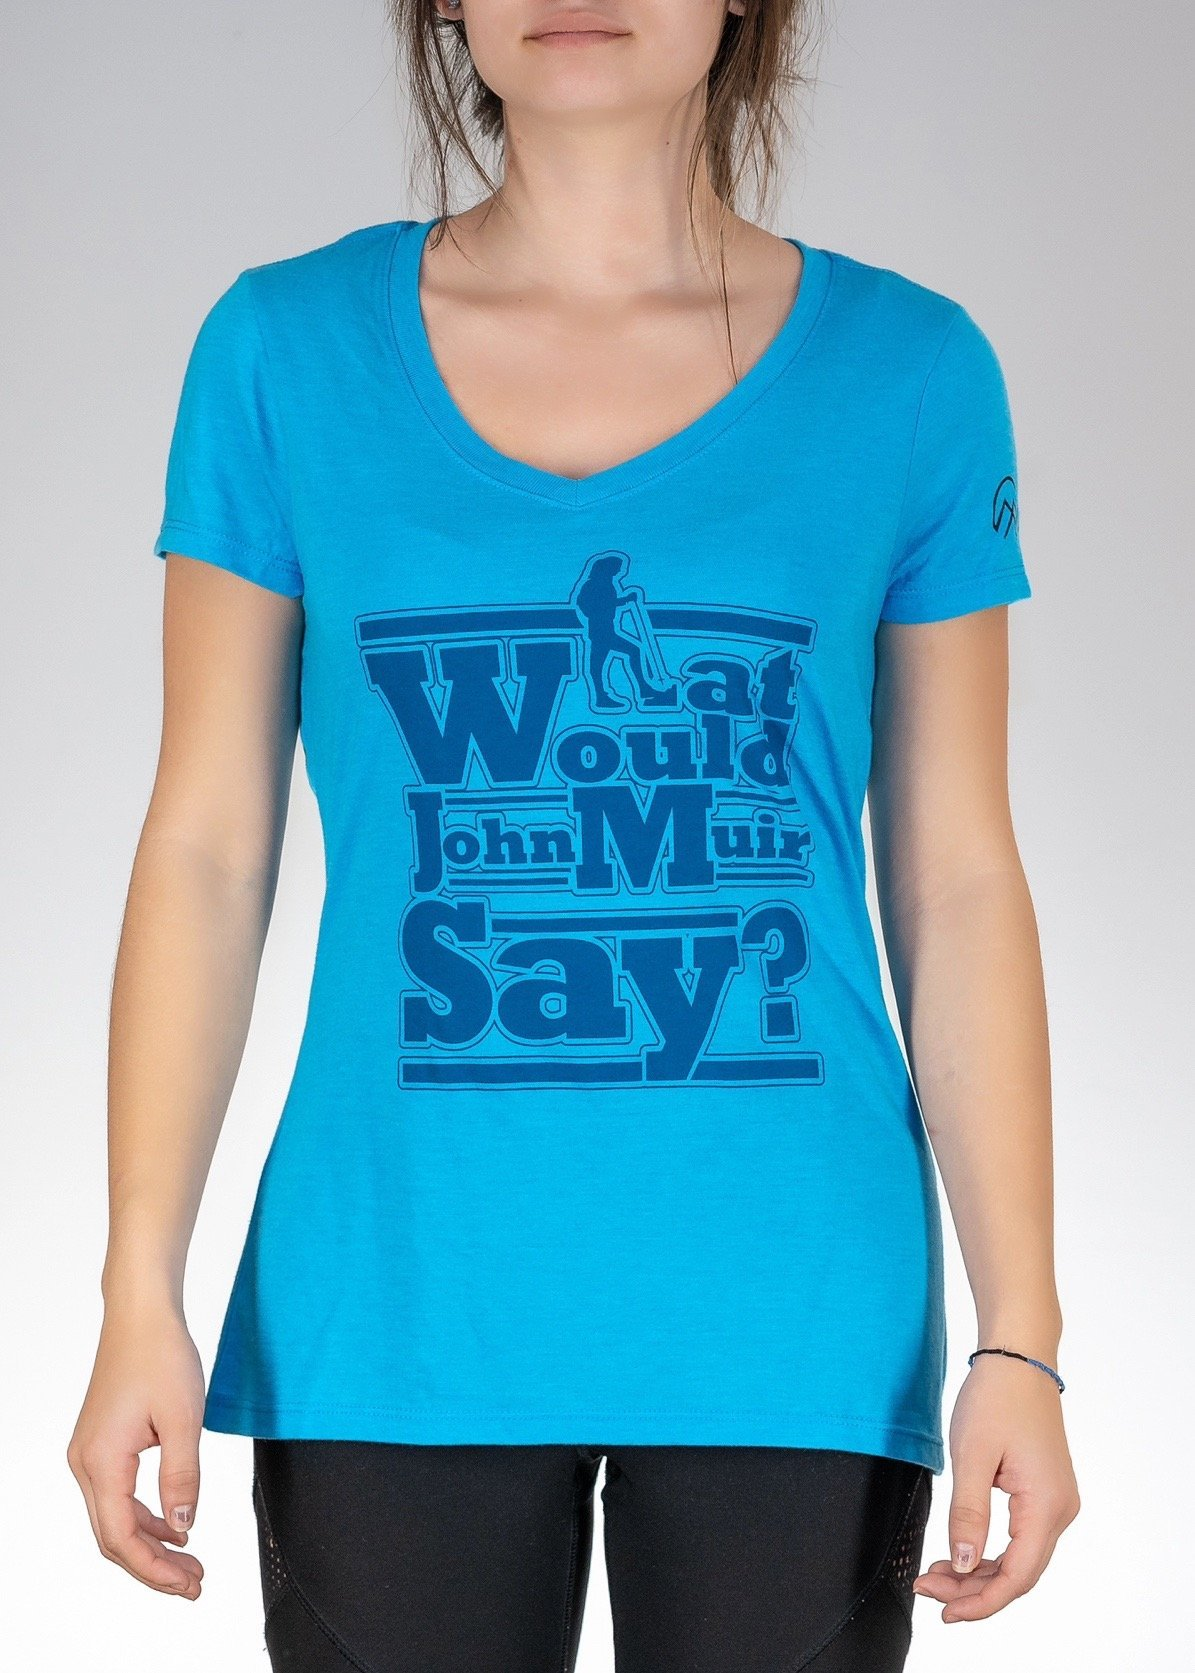 Apparel .What Would John Muir Say! V-Neck - Turquoise Frost